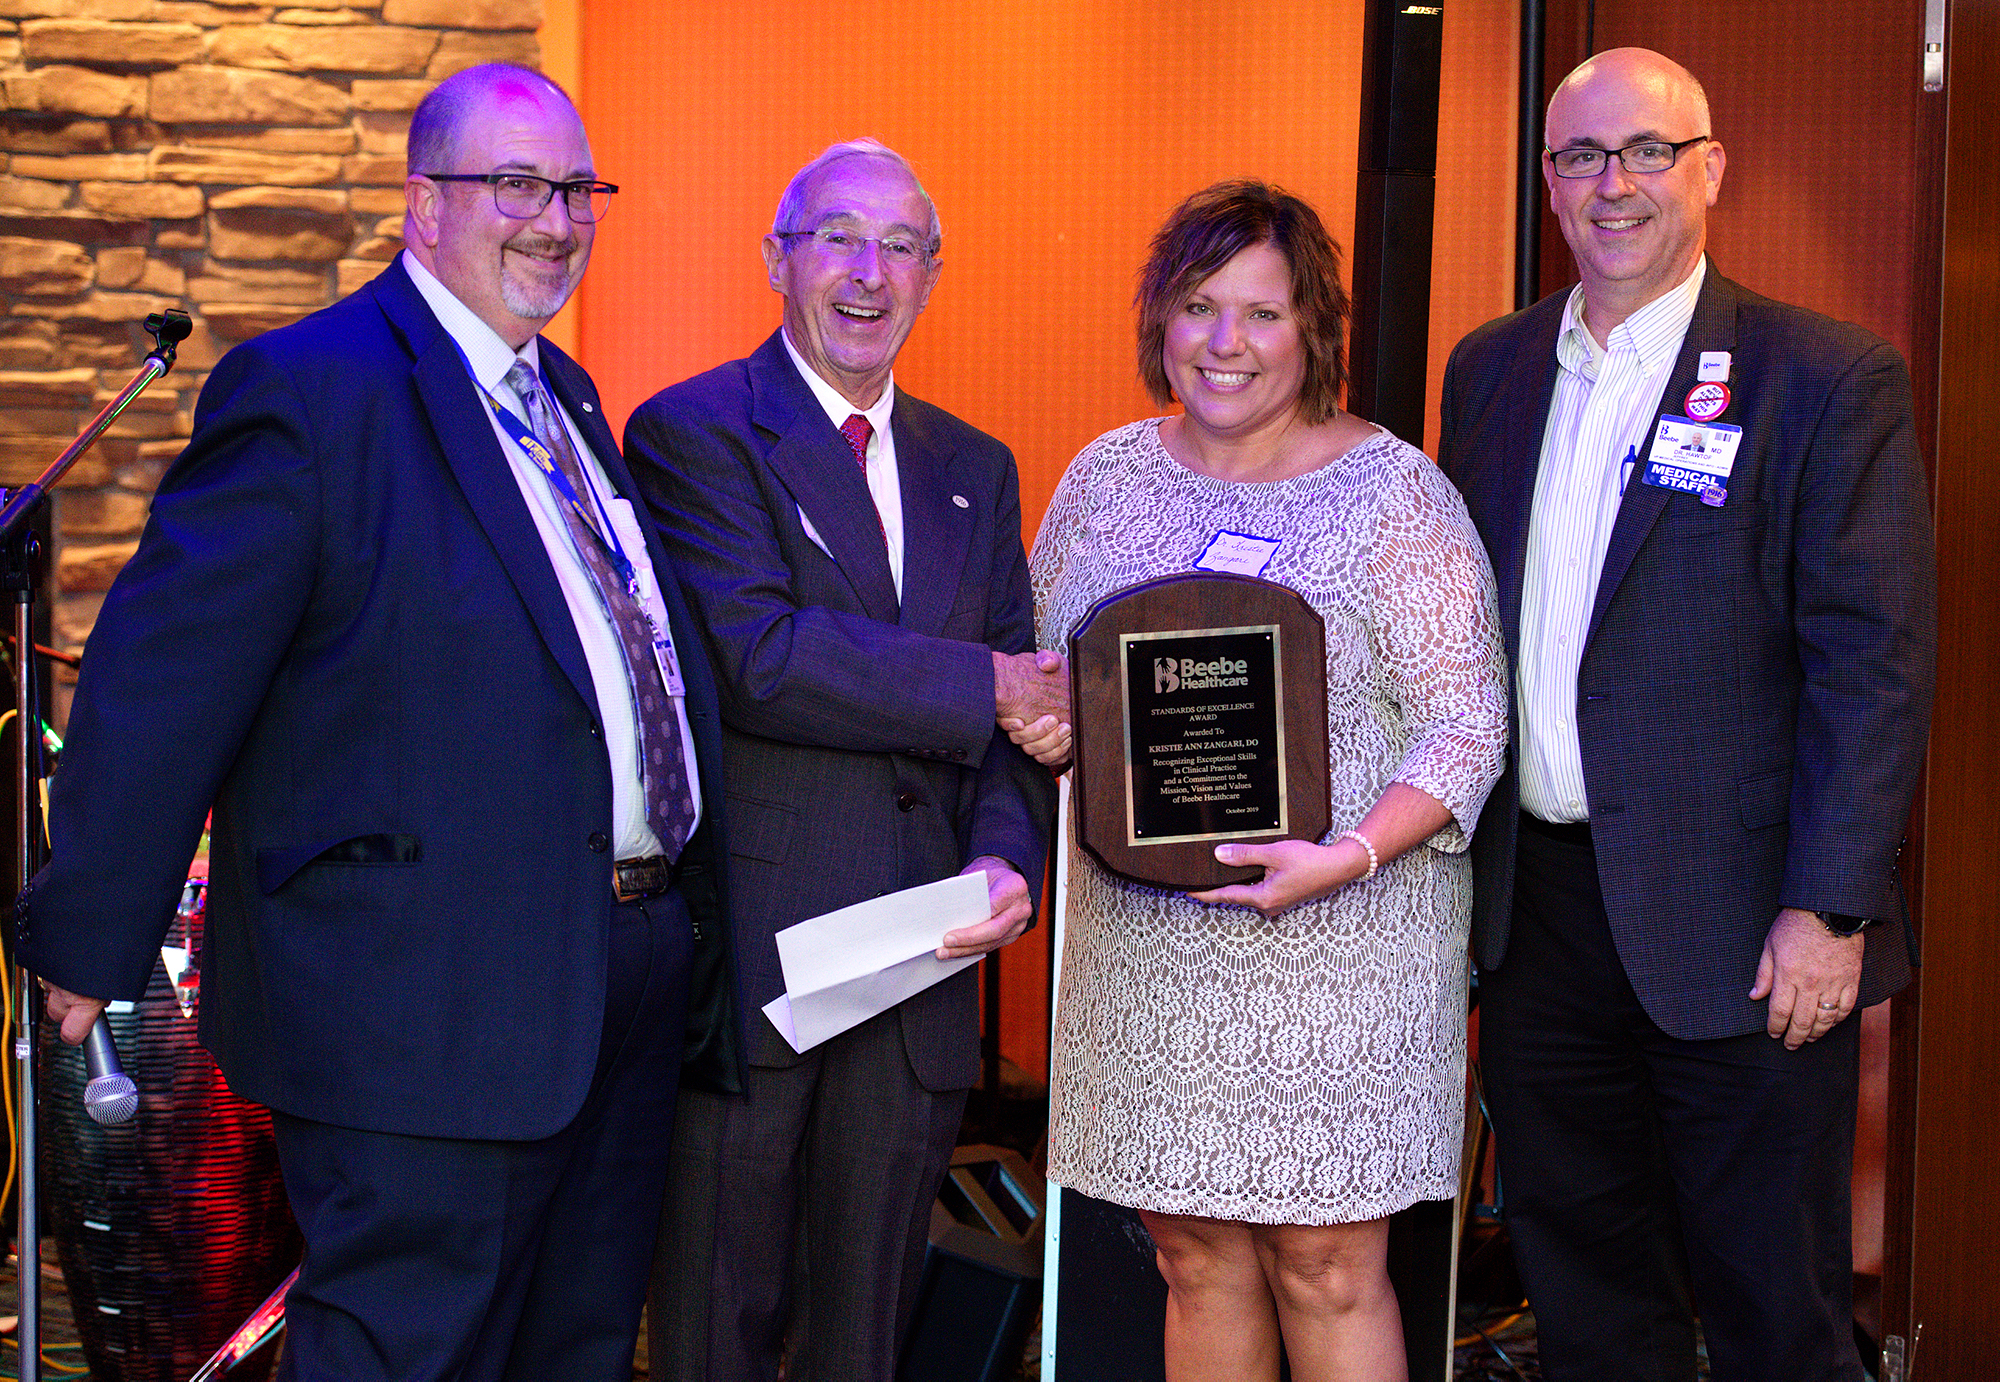 Shown during the physician award presentation, left to right, are Rick Schaffner, Interim CEO, Executive Vice President, and COO; David Herbert, Chair of Beebe Board of Directors; Kristie Zangari, DO, and Jeffrey Hawtof, MD, VP of Medical Operations.